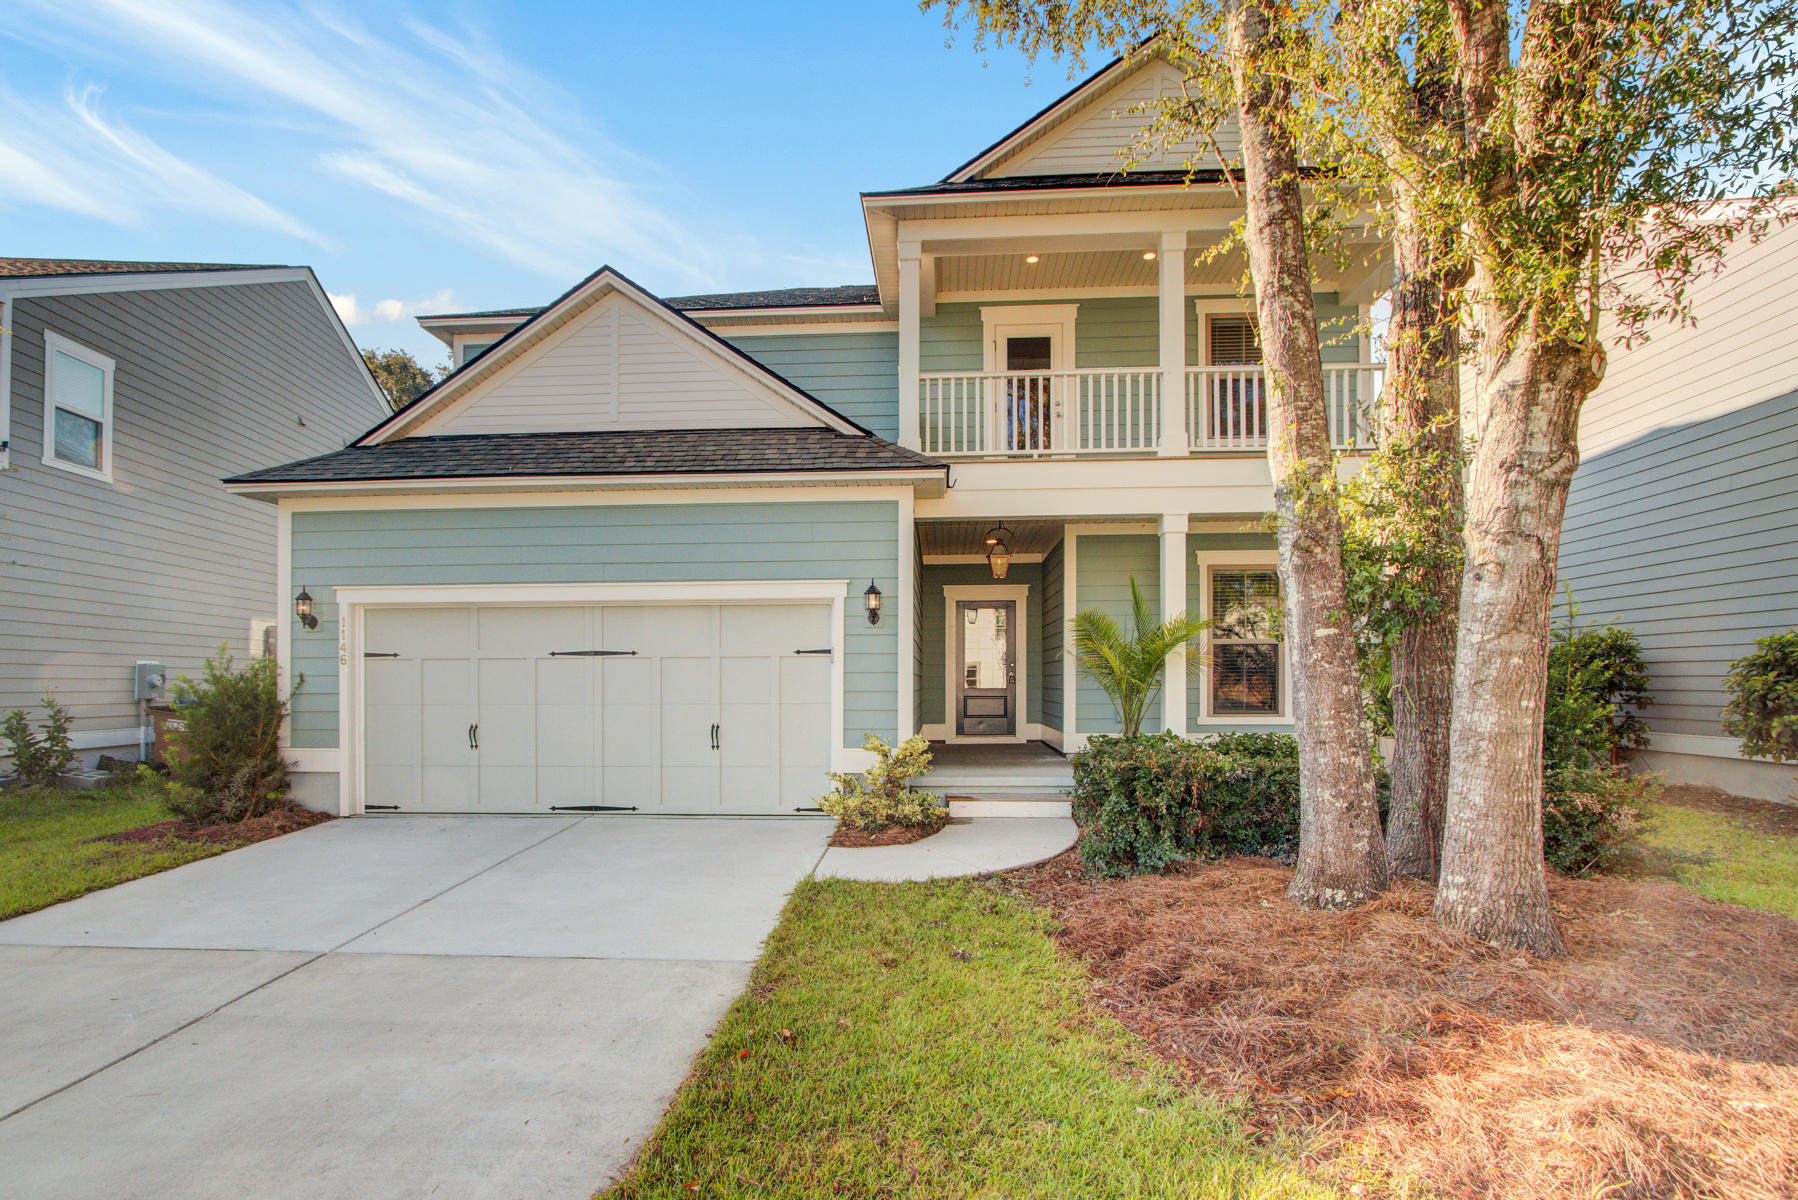 Dills Bluff Homes For Sale - 1146 Bright, Charleston, SC - 29